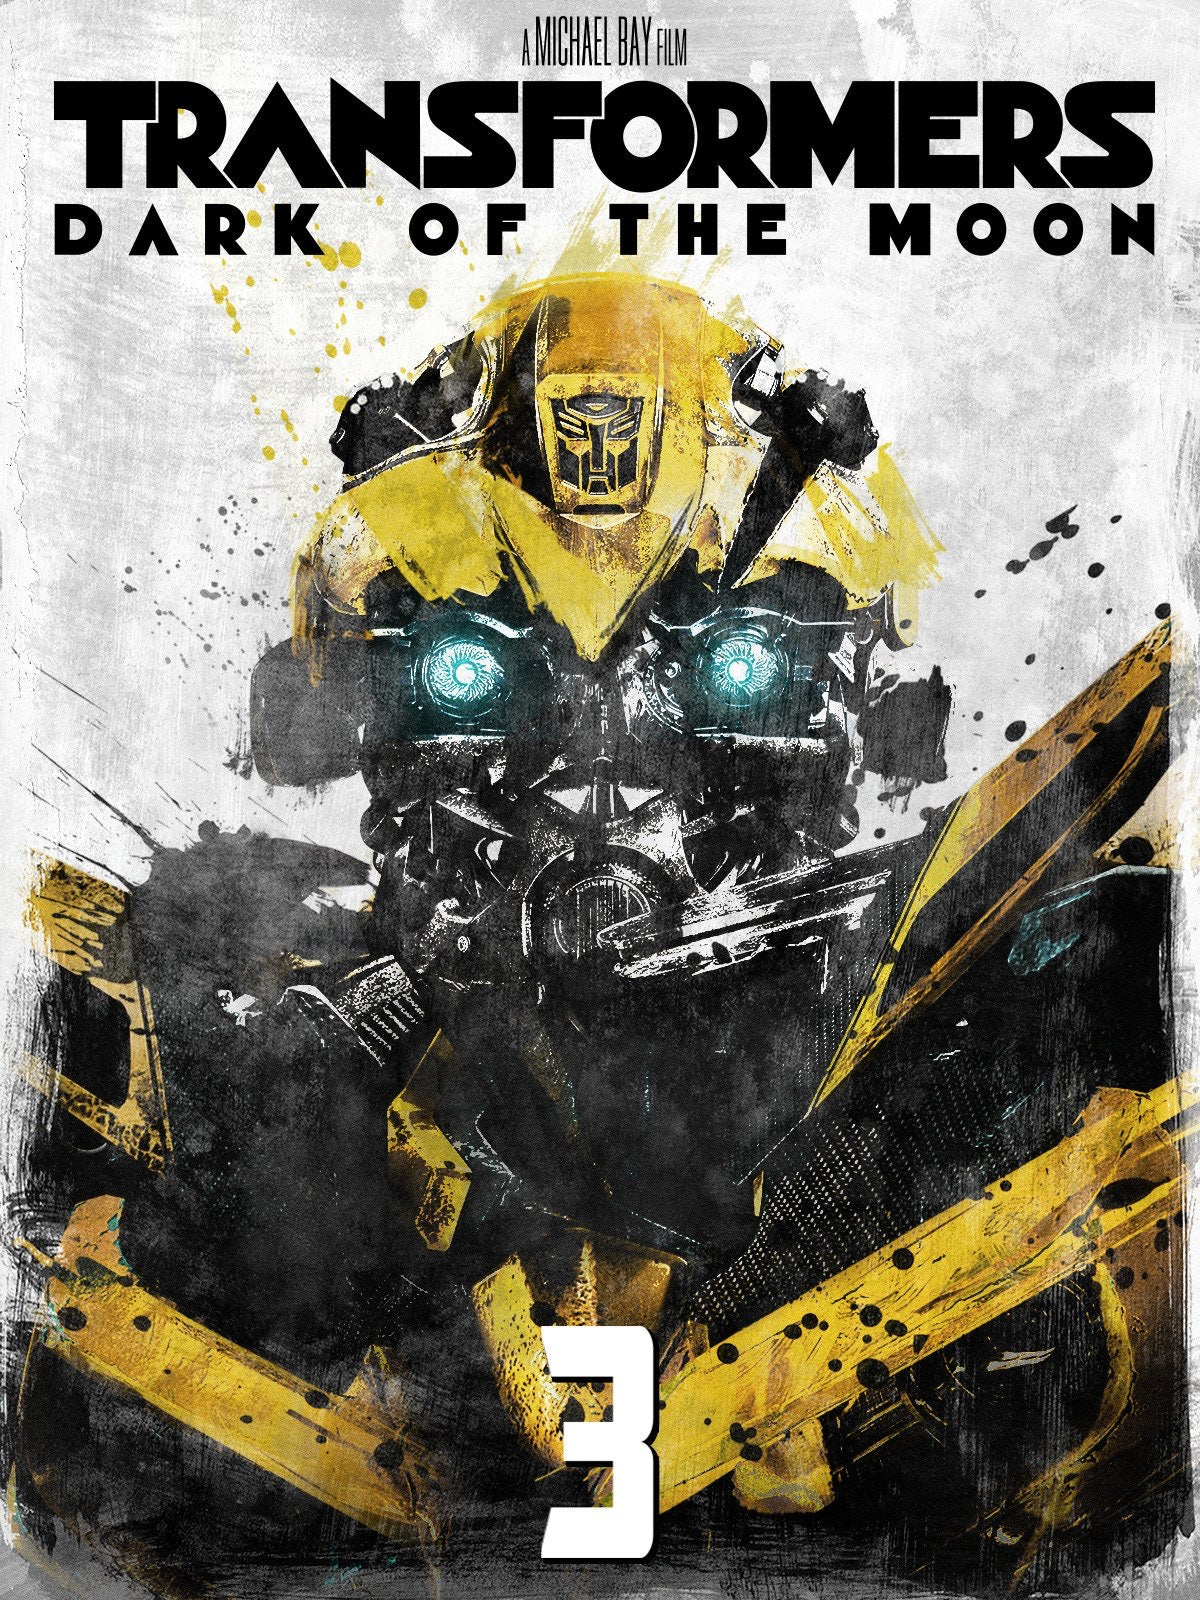 Transformers: Dark of the Moon (2011) Vudu HD redemption only